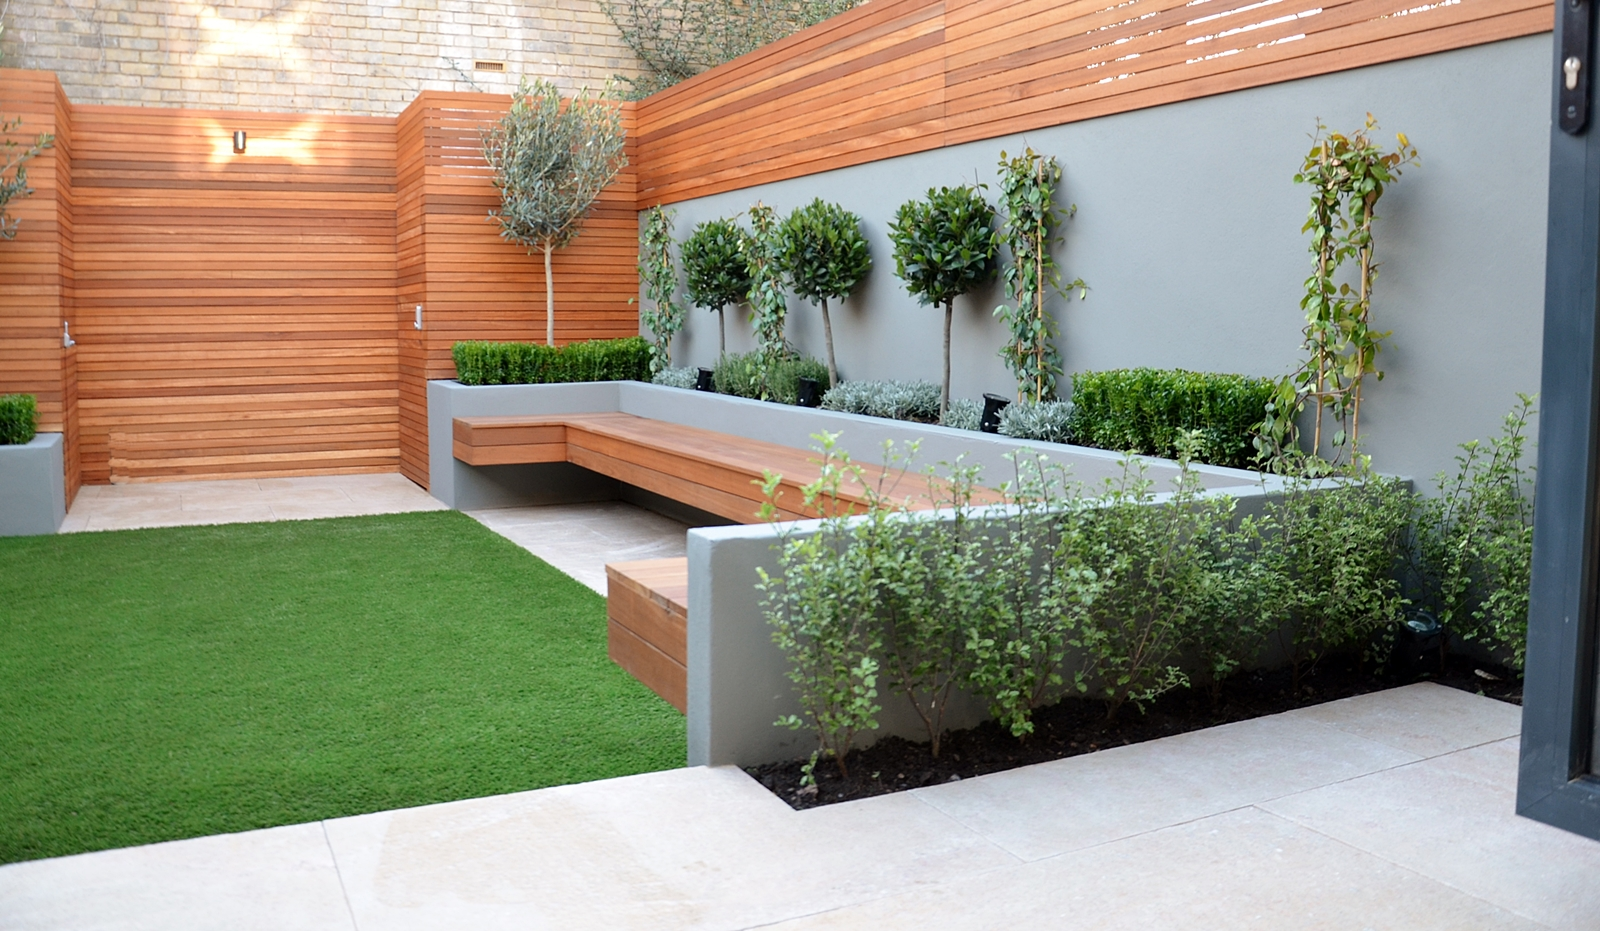 Clapham and london garden design 2015 for Landscape design london